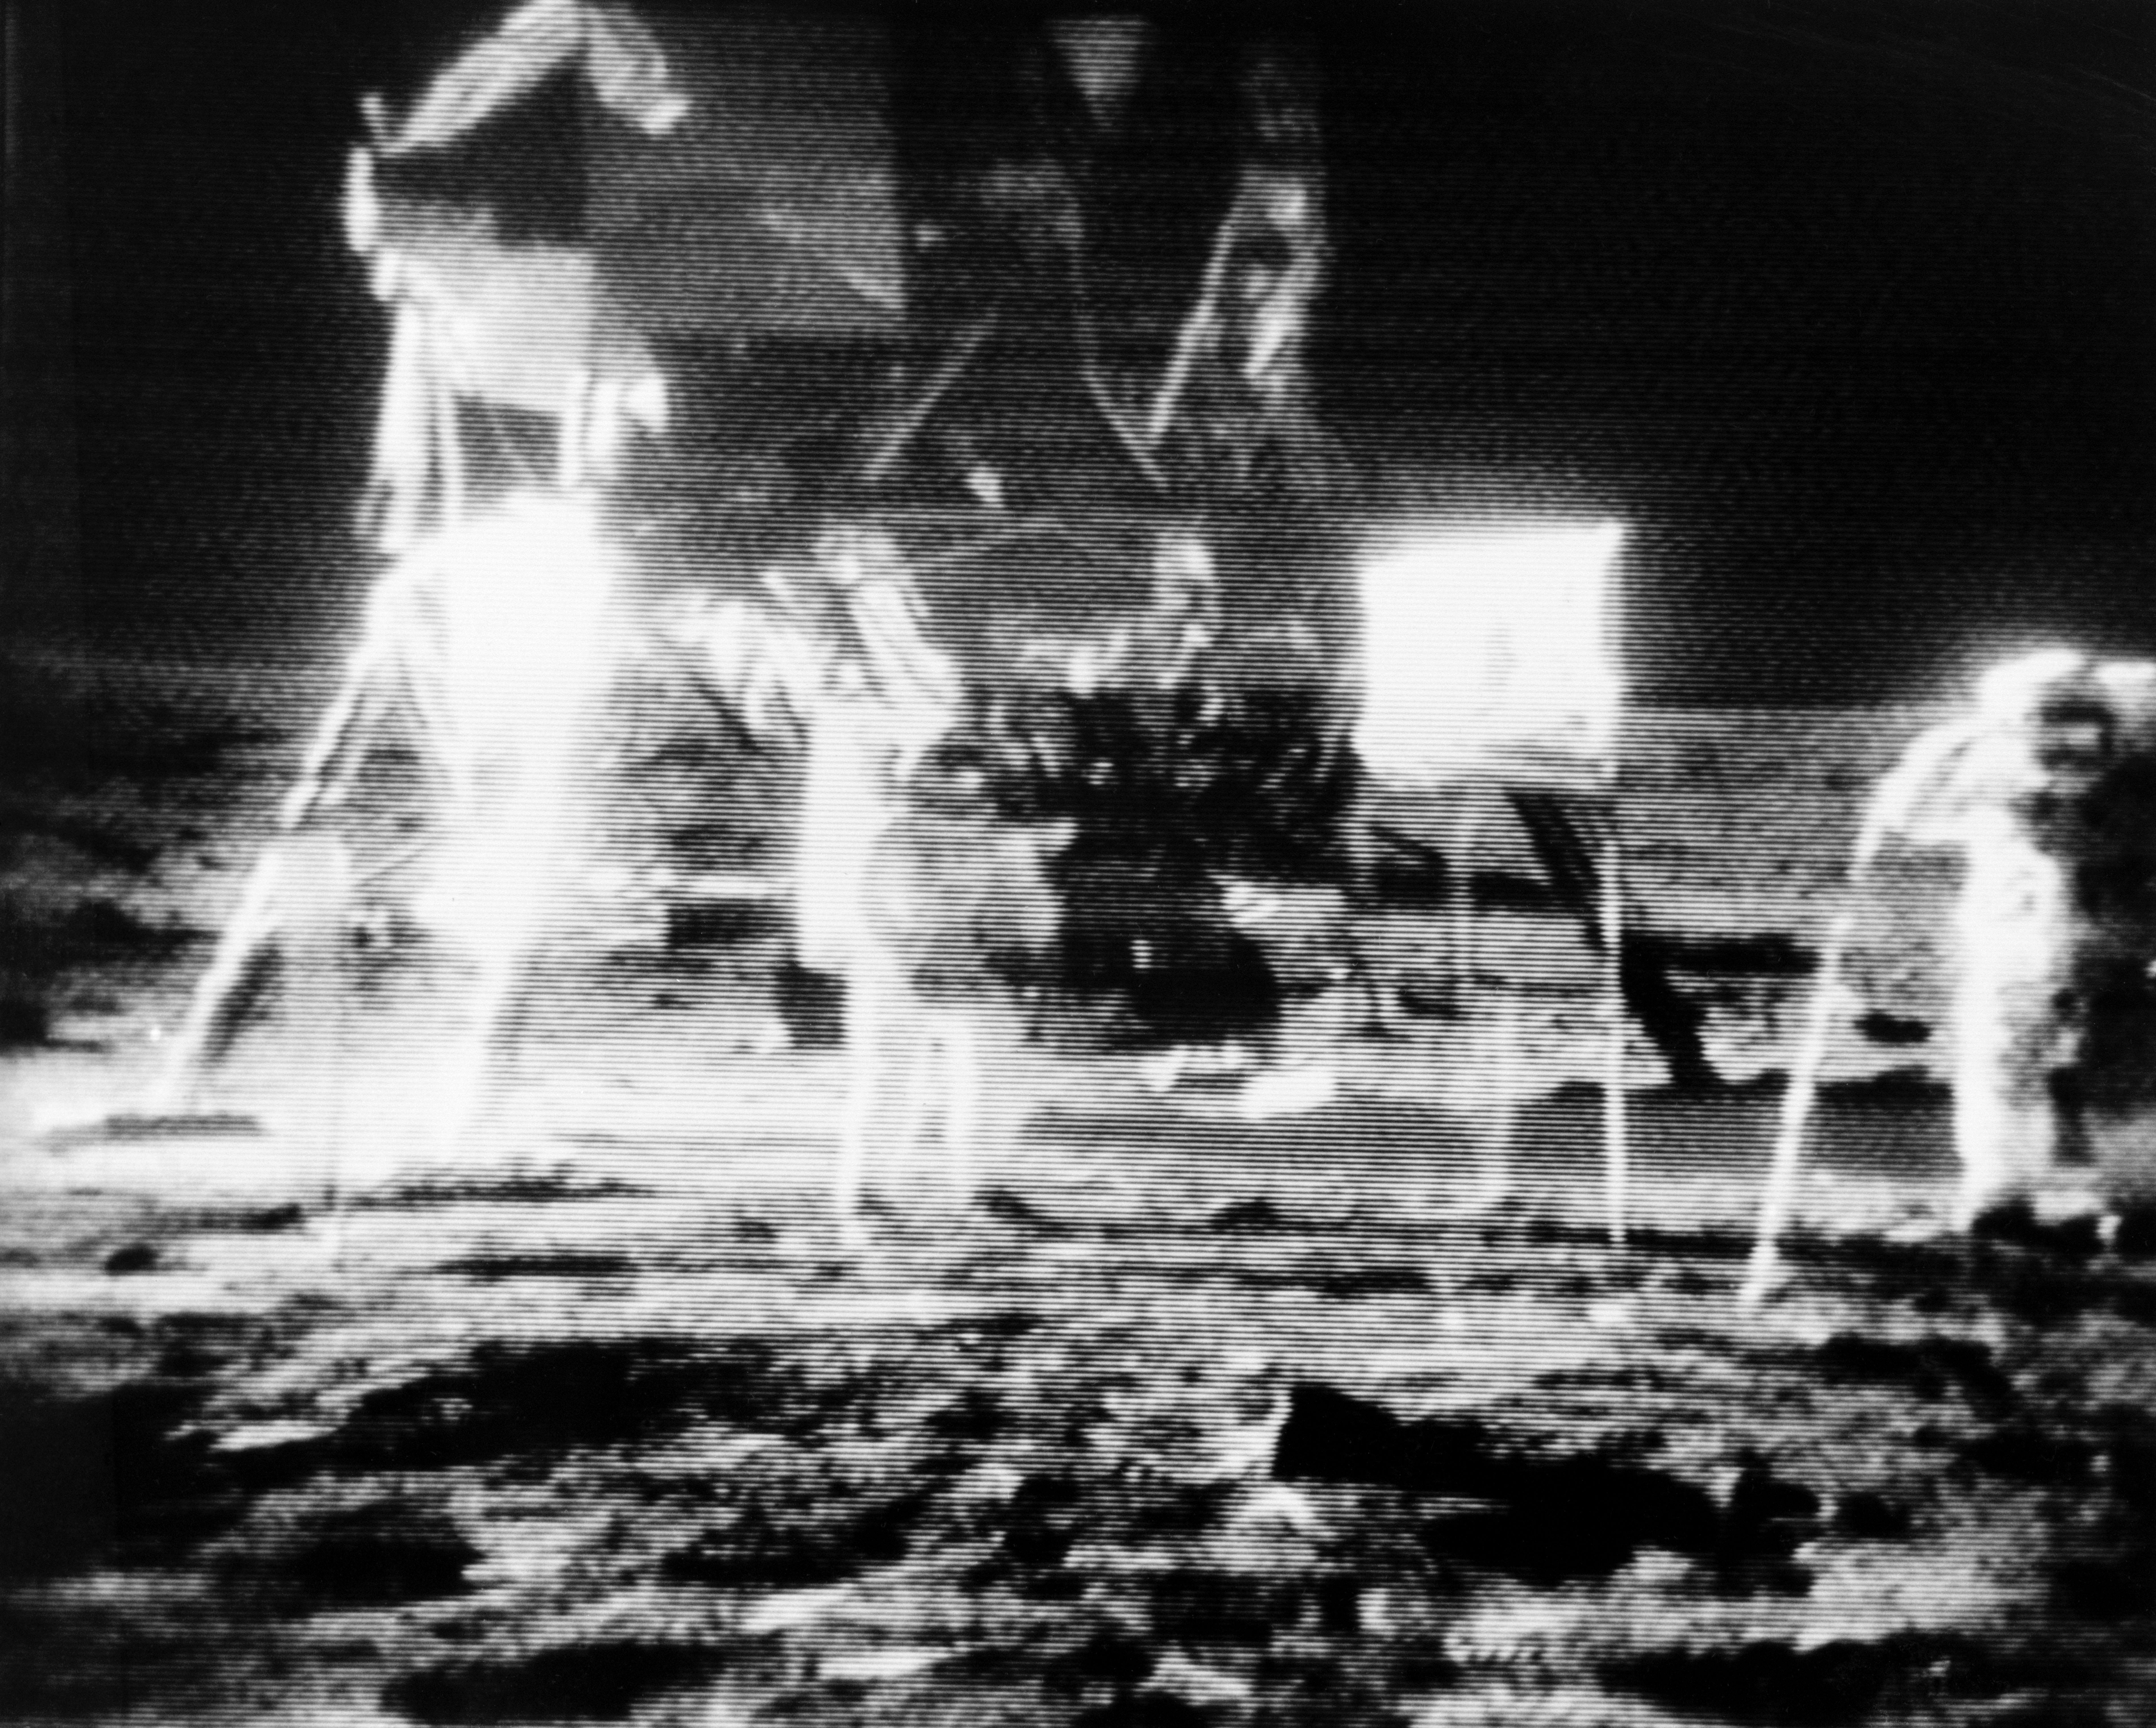 Televised image of Neil Armstrong and Buzz Aldrin on the moon